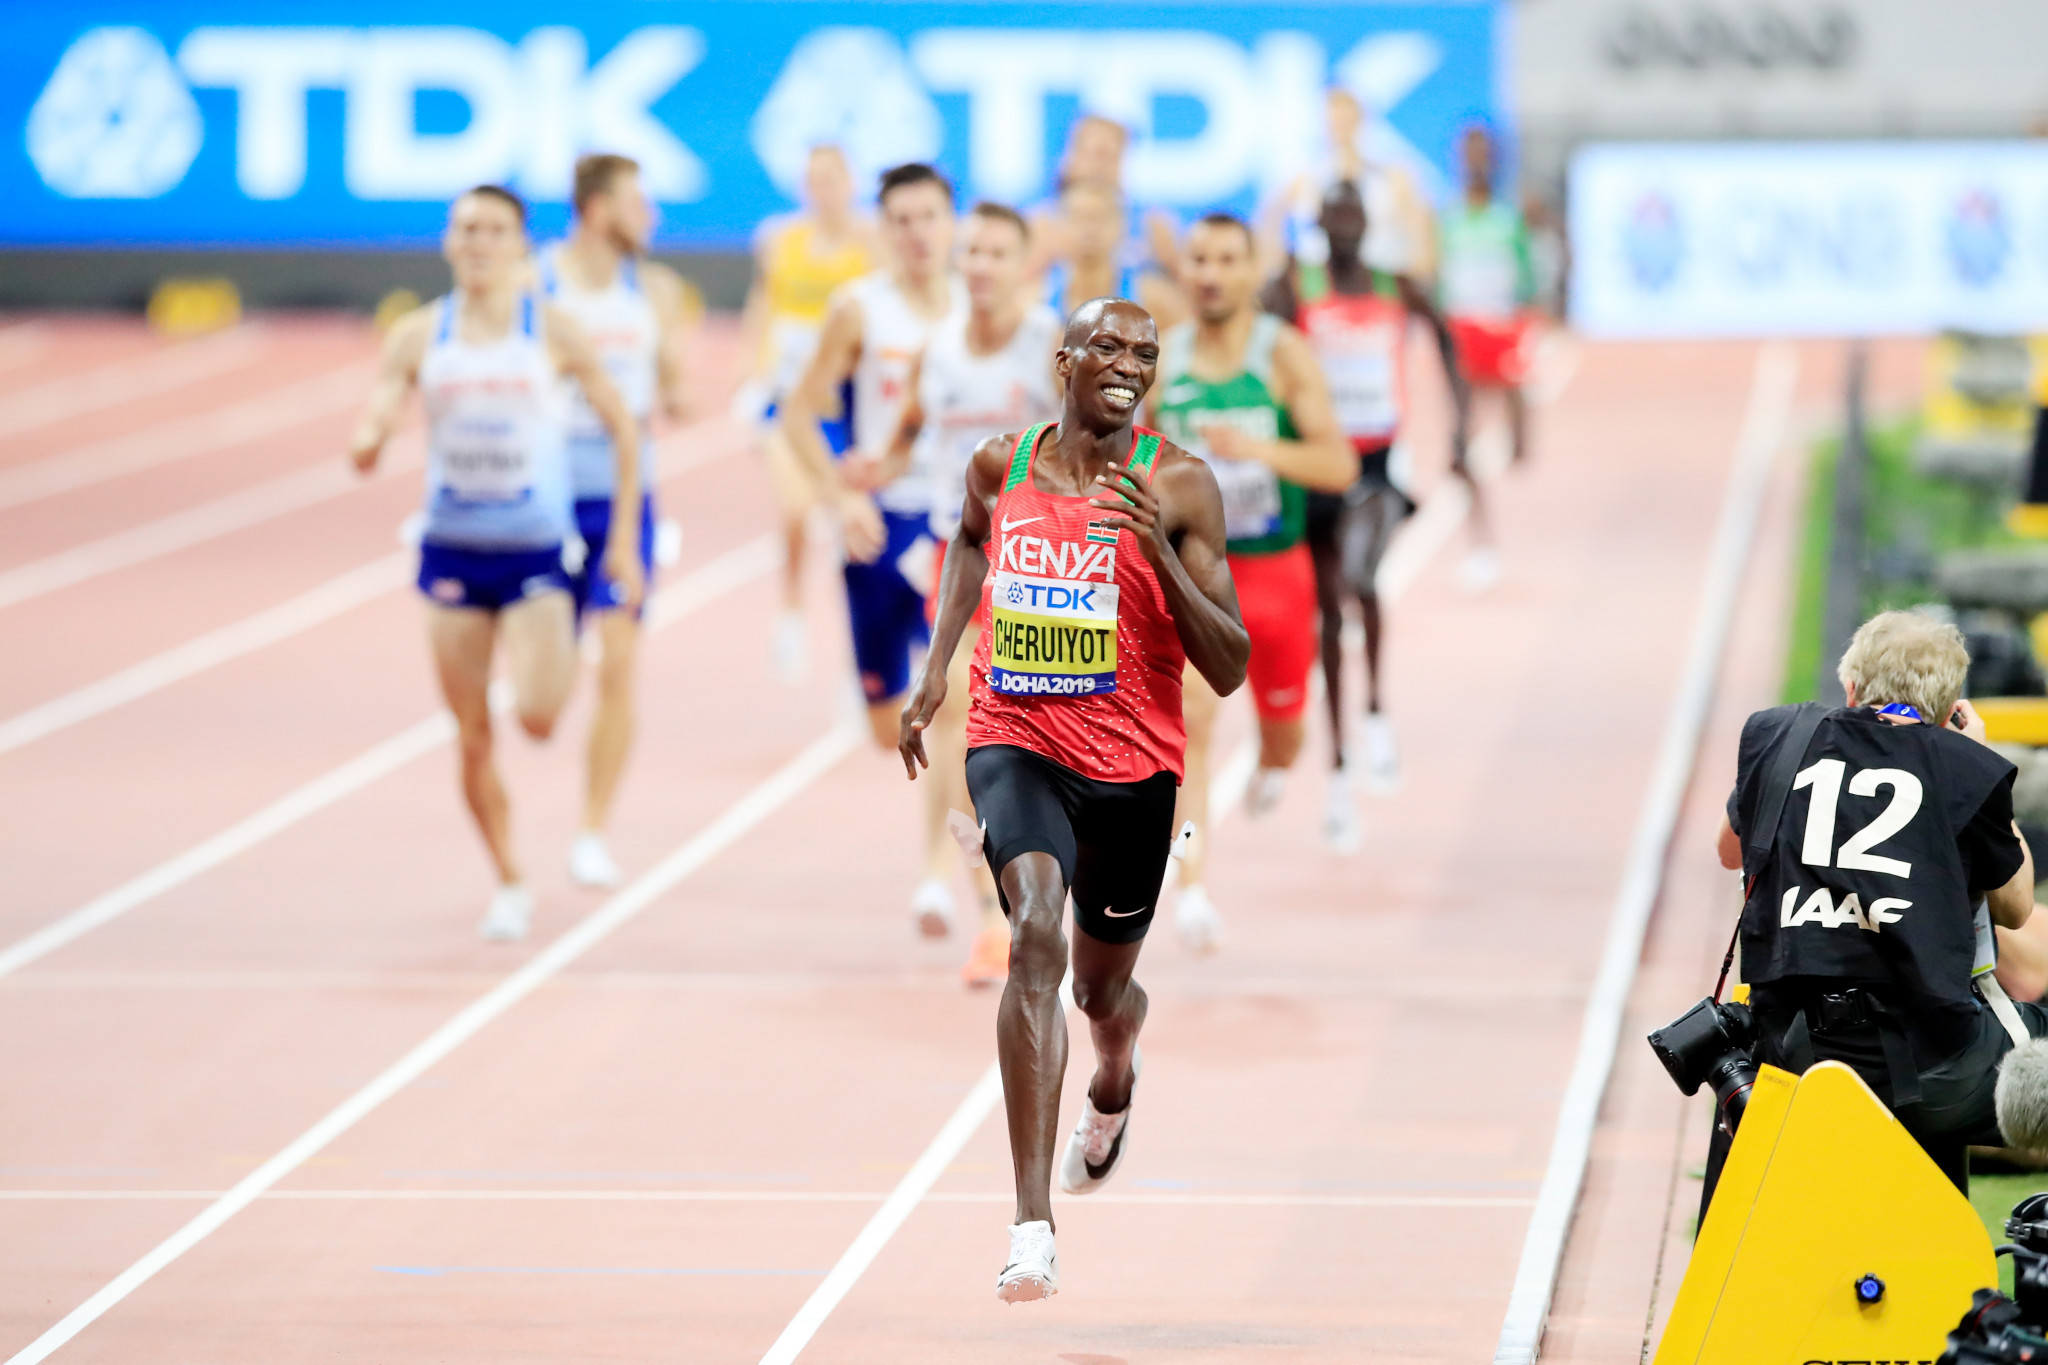 Timothy Cheruiyot of Kenya destroyed the rest of the field to win the men's 1,500m with an outstanding display of front-running ©Getty Images